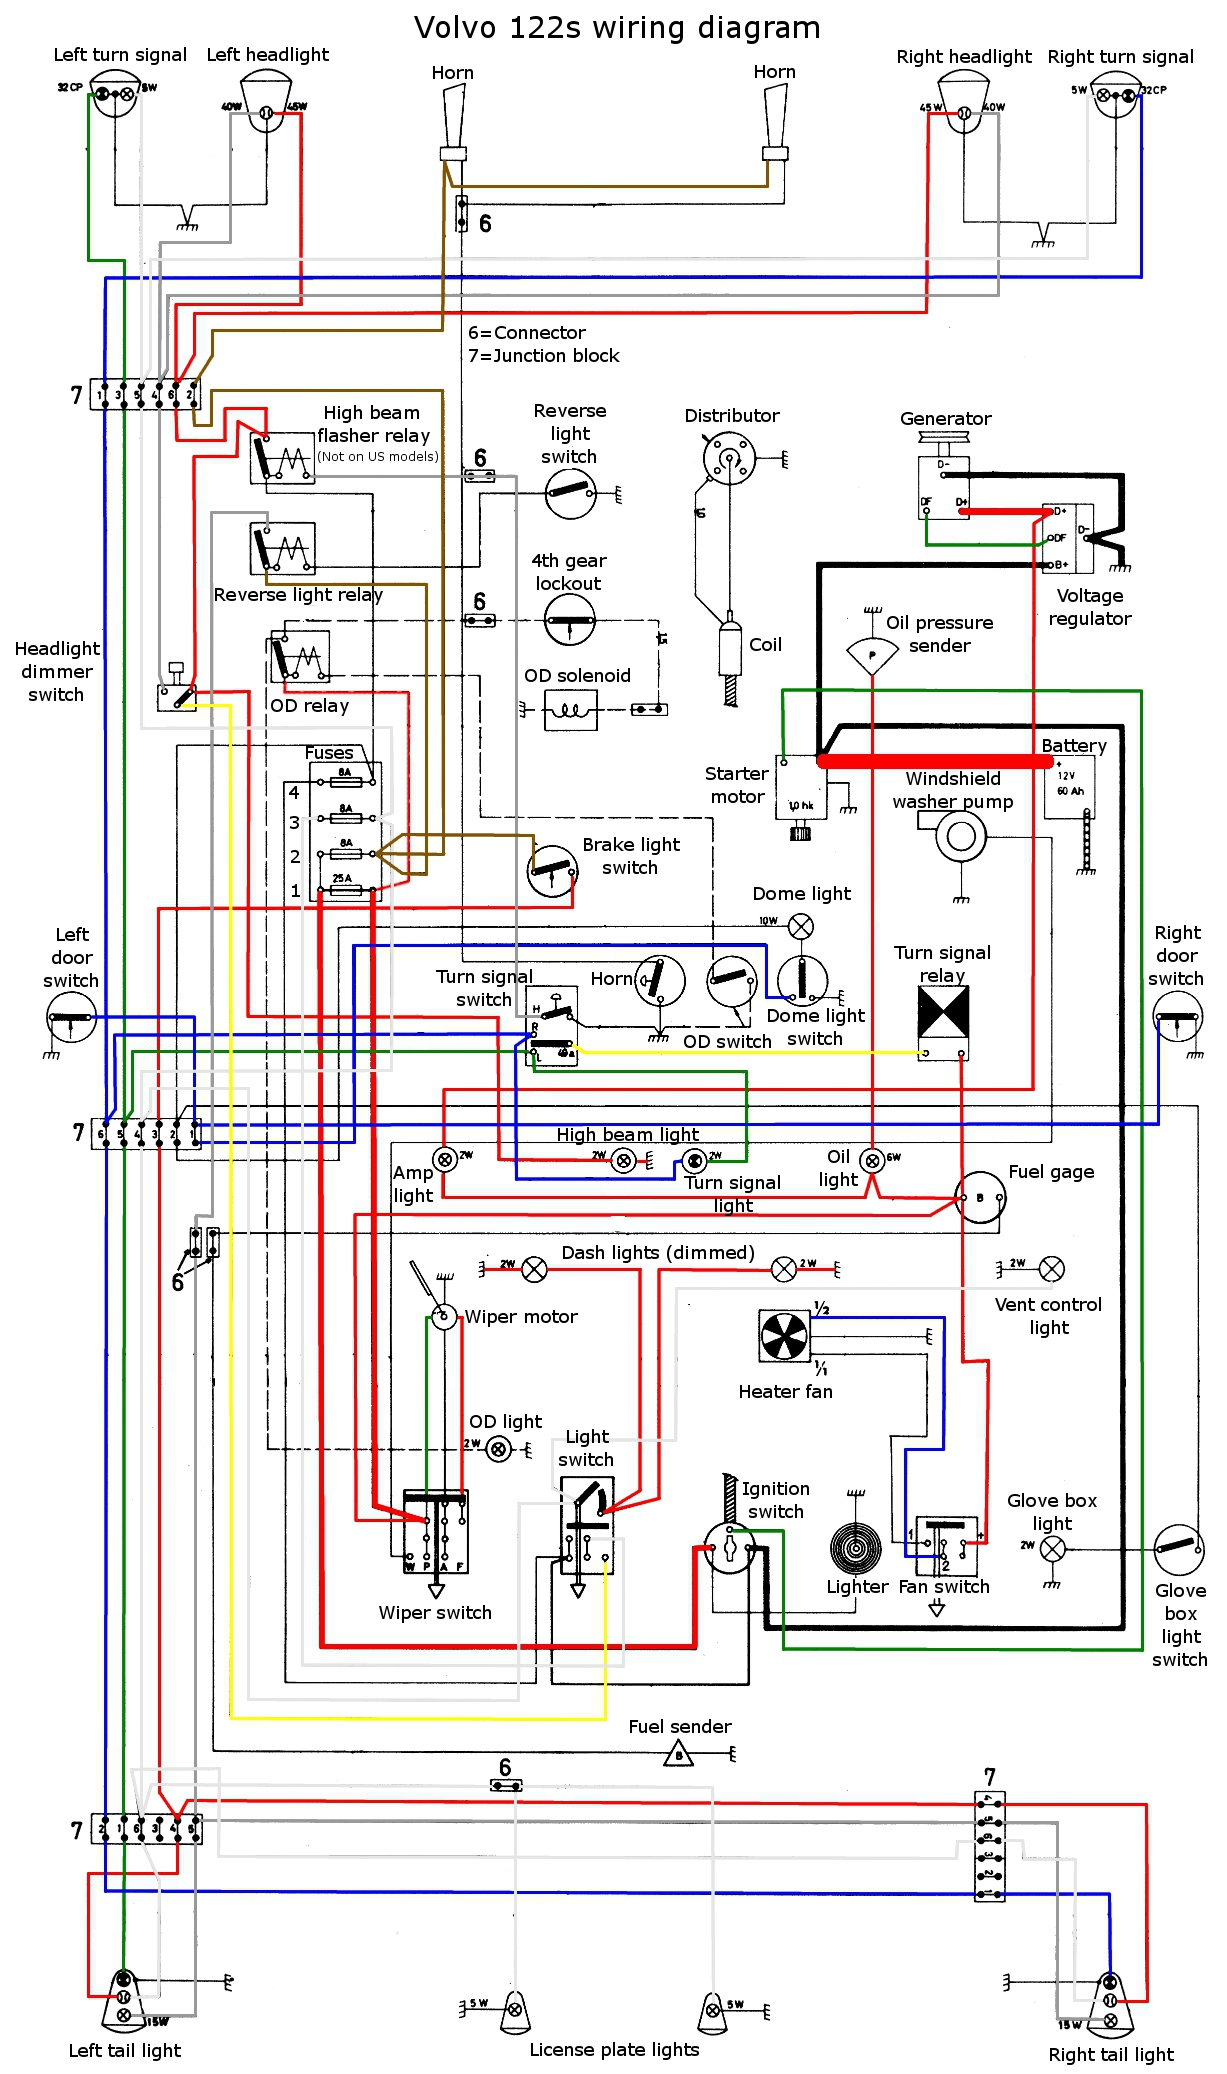 122 wiring diagram color?resize\\\\\\\\\\\\\\\=1227%2C2074 volvo wiring diagrams s60 gandul 45 77 79 119 pc9-401 wiring diagram at panicattacktreatment.co